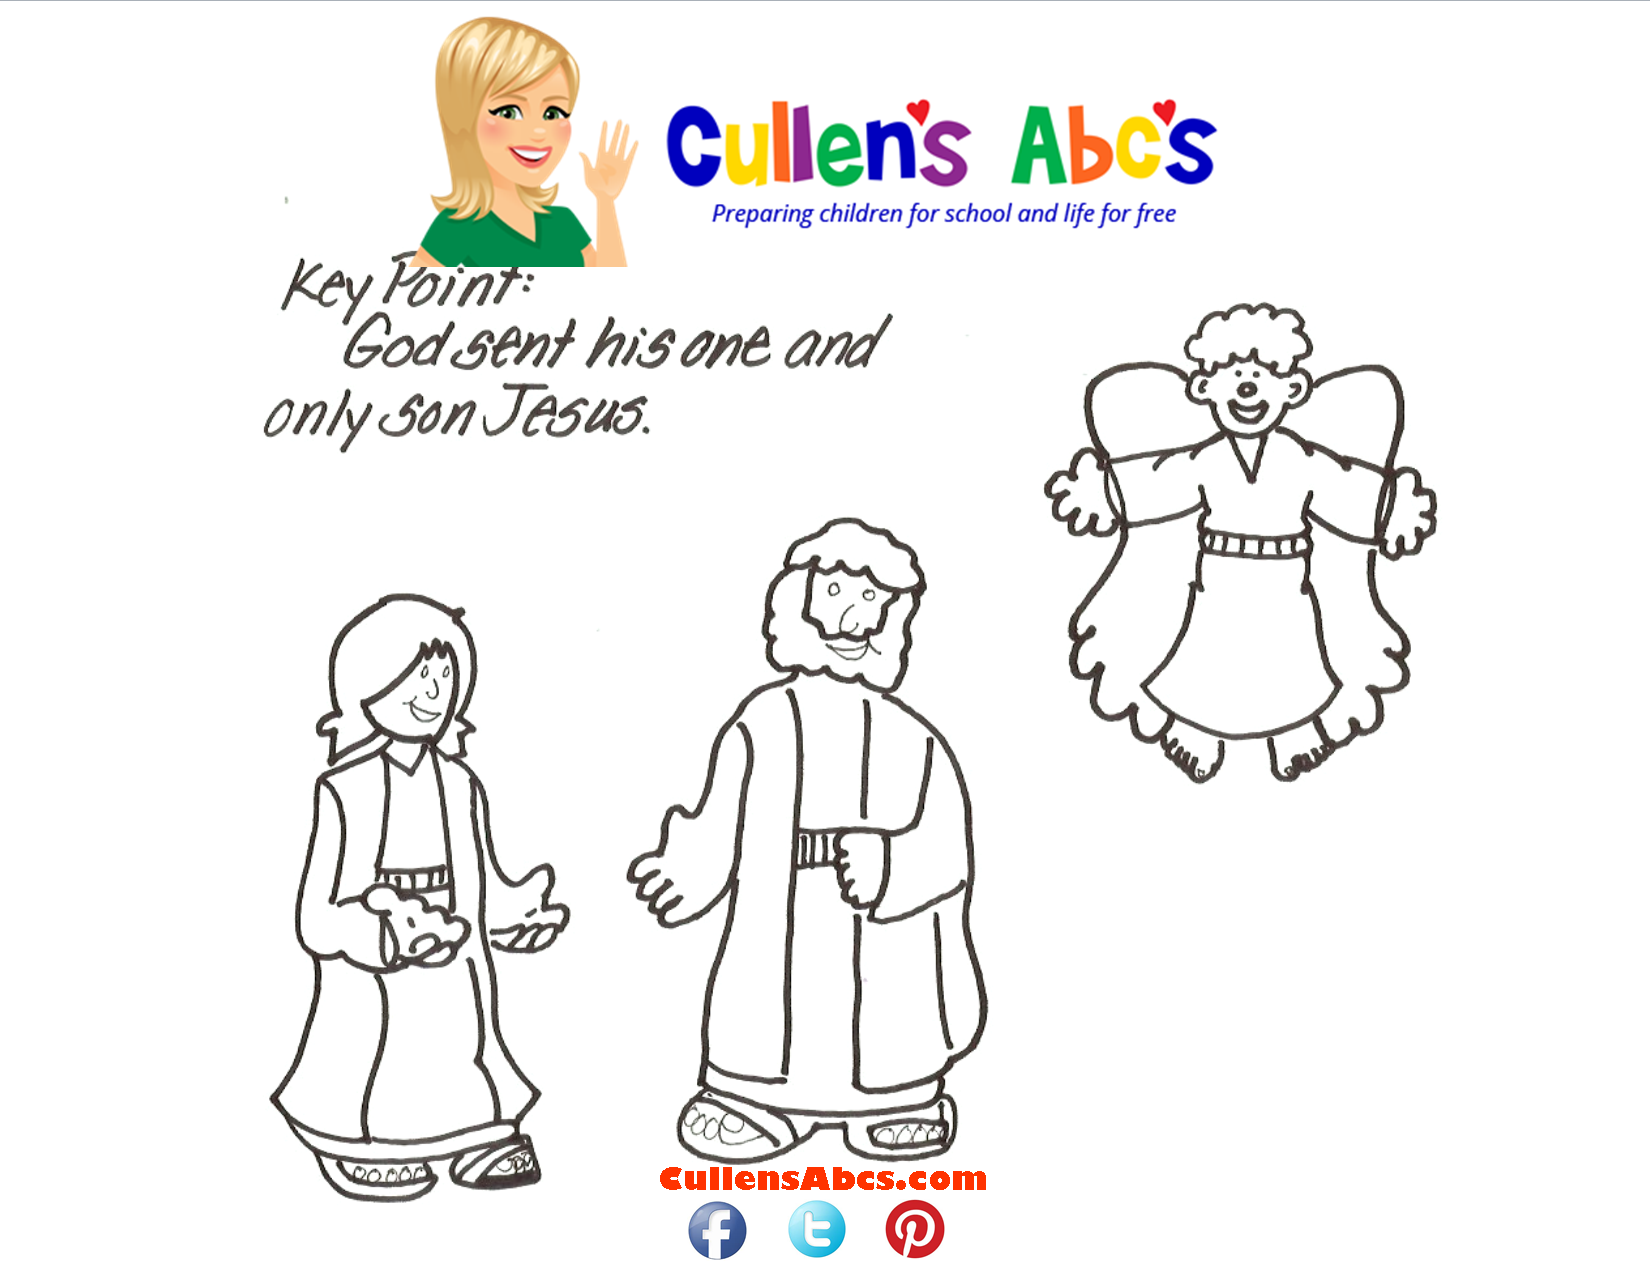 Bible Key Point Coloring Page - Angels Telling the Good News